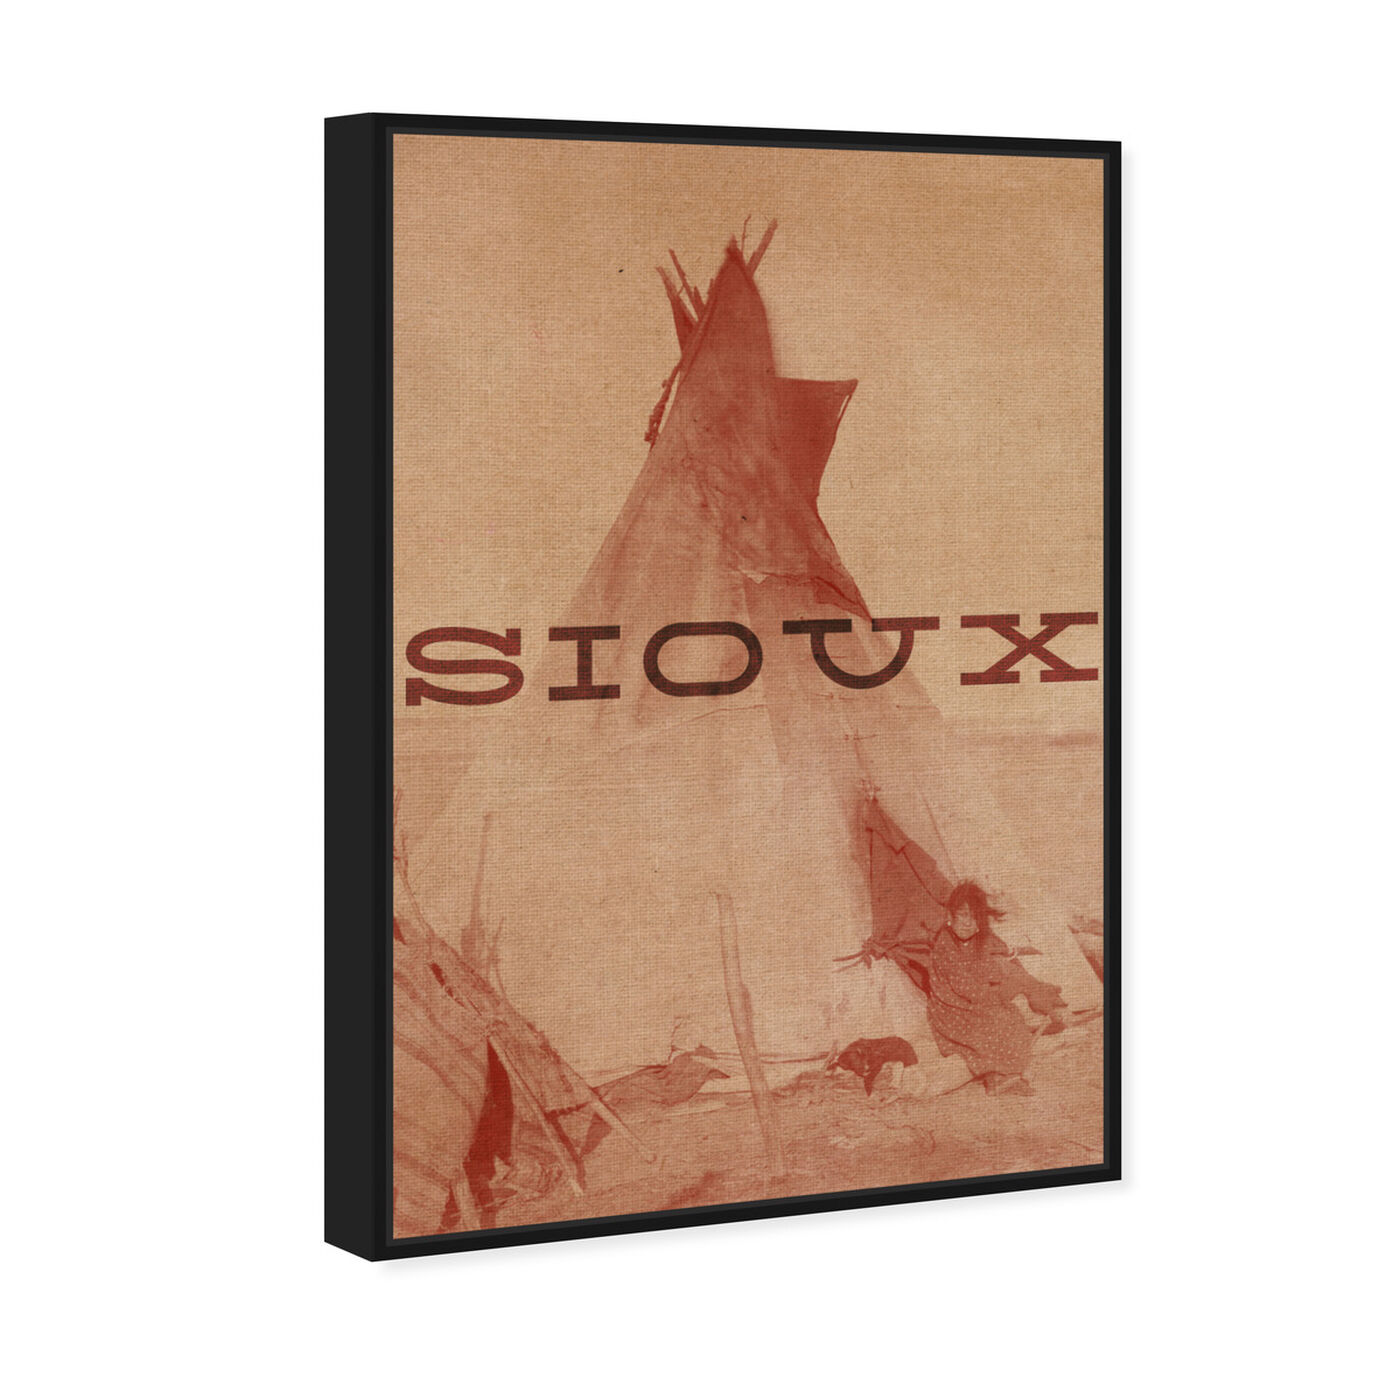 Angled view of Sioux featuring world and countries and american indigenous art.